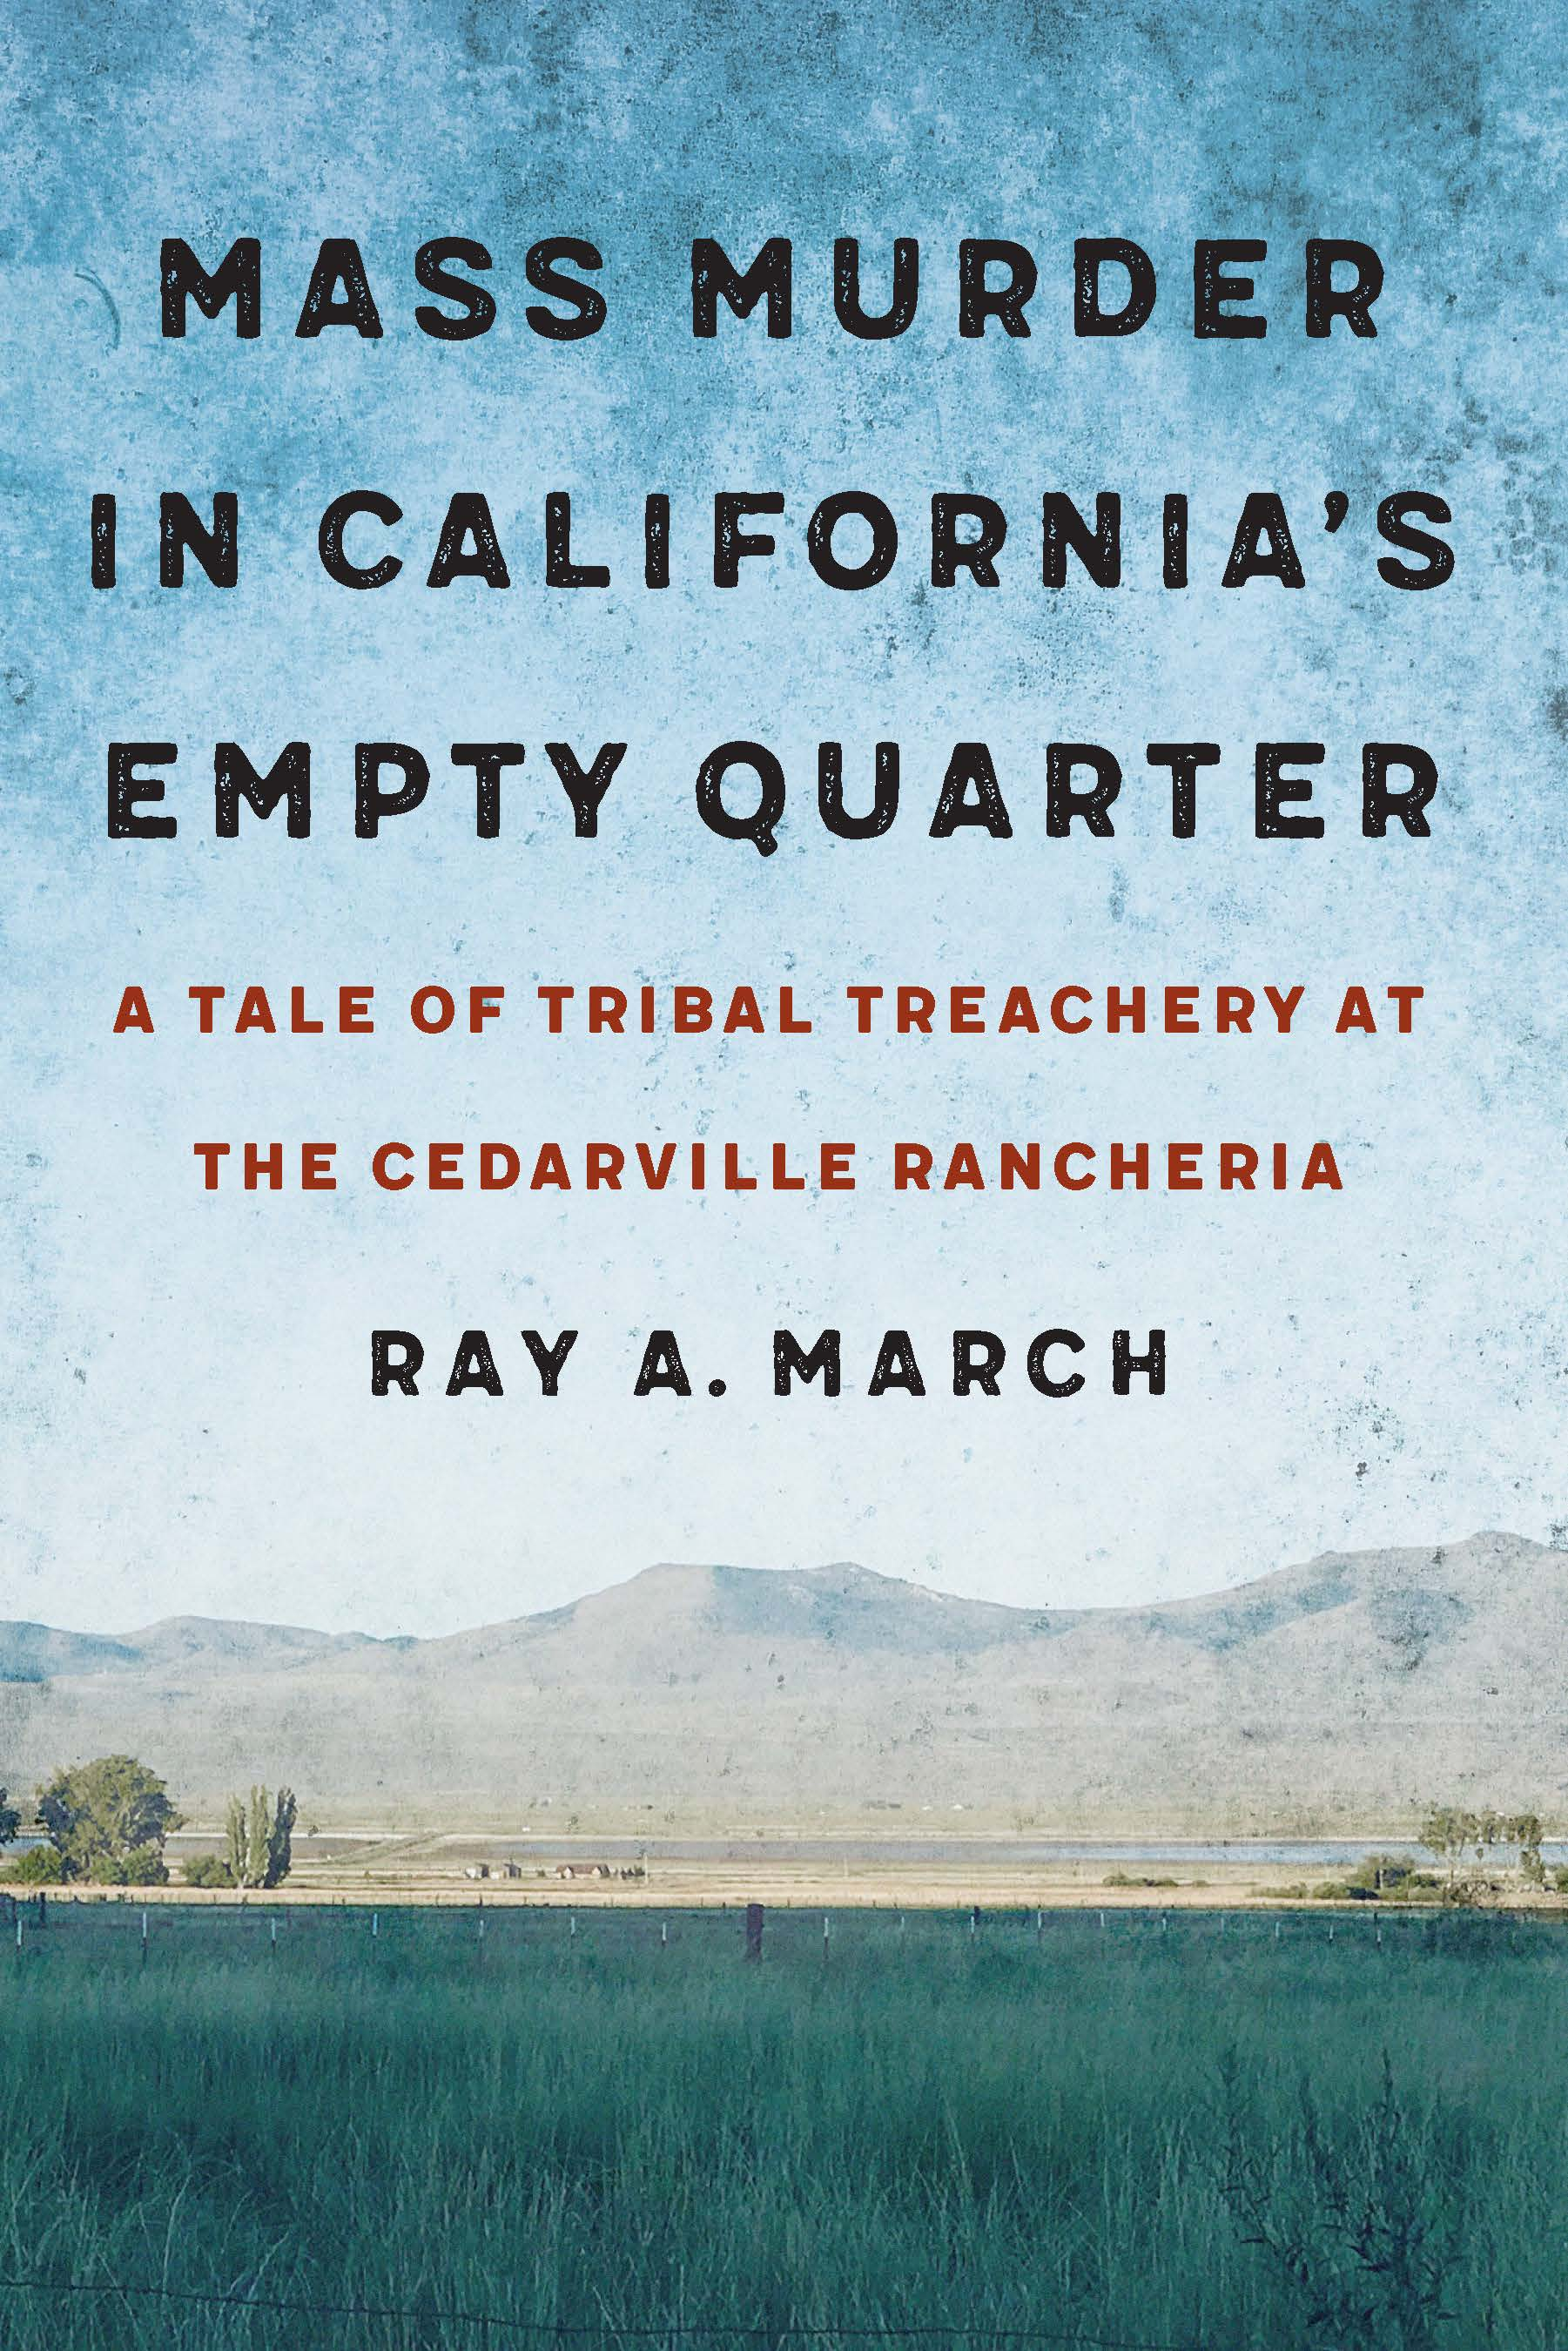 [PDF] [EPUB] Mass Murder in California's Empty Quarter: A Tale of Tribal Treachery at the Cedarville Rancheria Download by Ray A. March